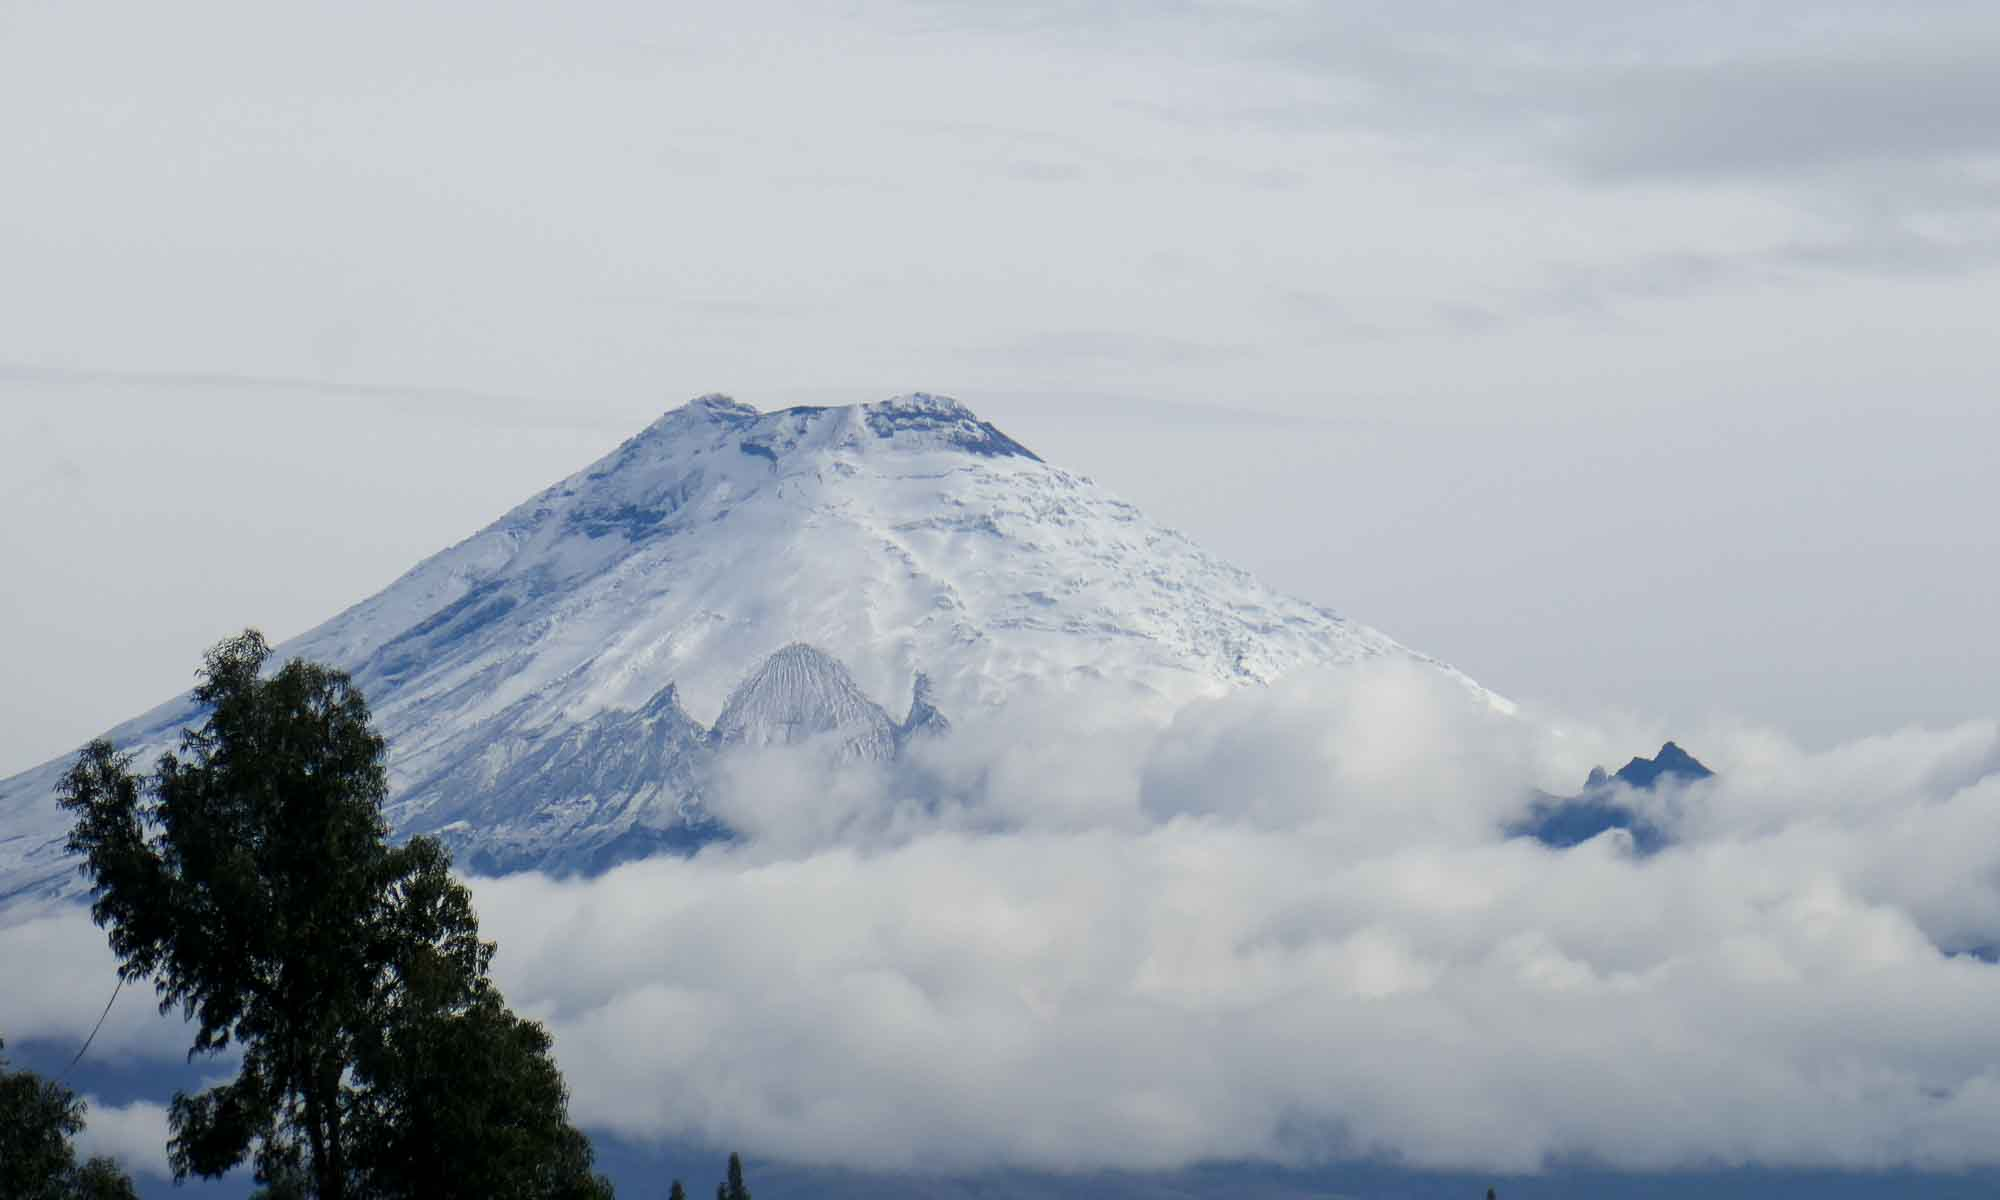 A clear view of the Cotopaxi Volcano summit